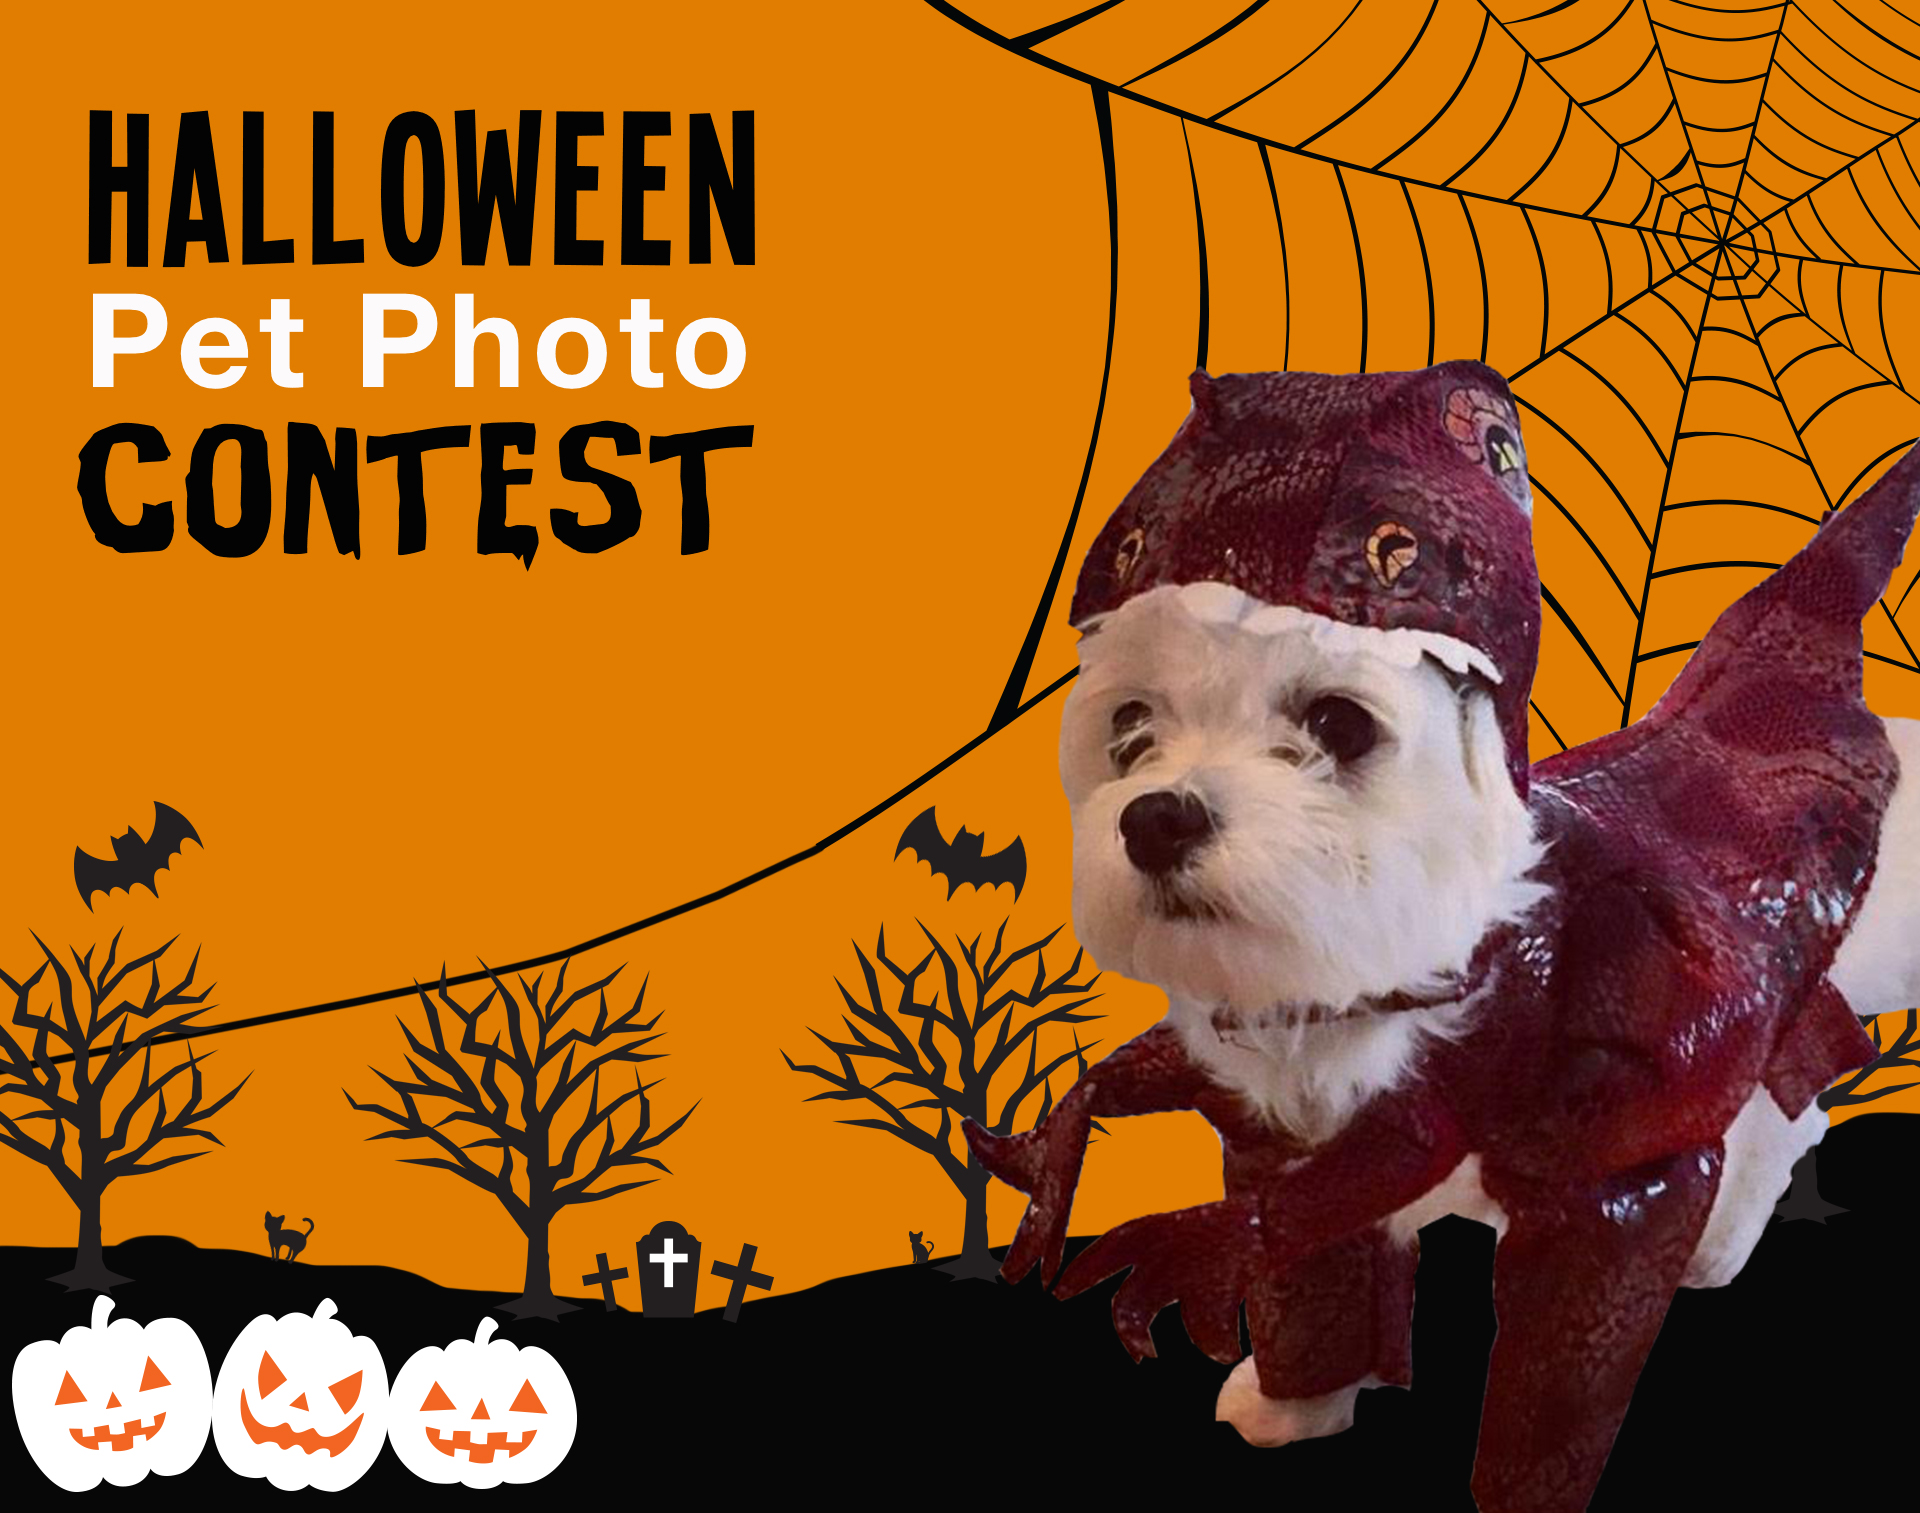 image on page for perceived to contain brochure flyer poster logo trademark - Pet Halloween Photo Contest